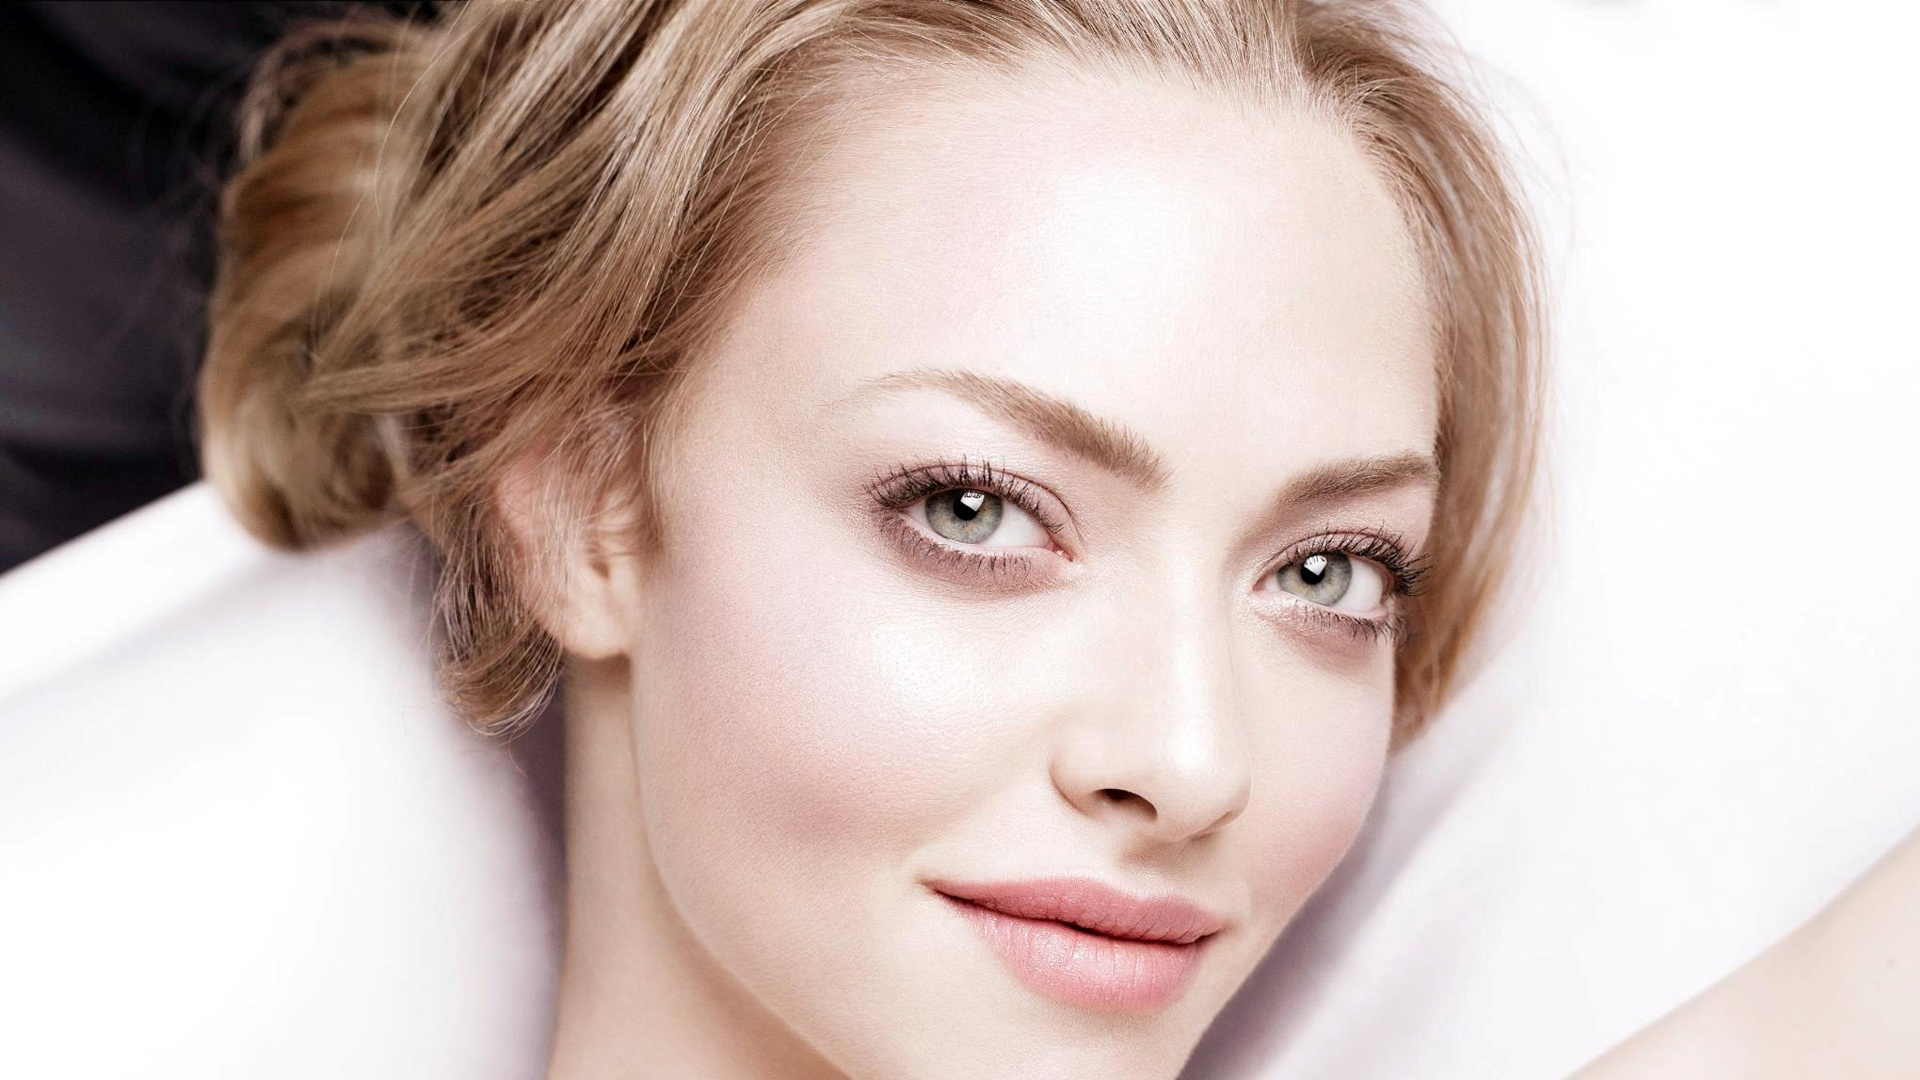 amanda seyfried wallpapers hd A1